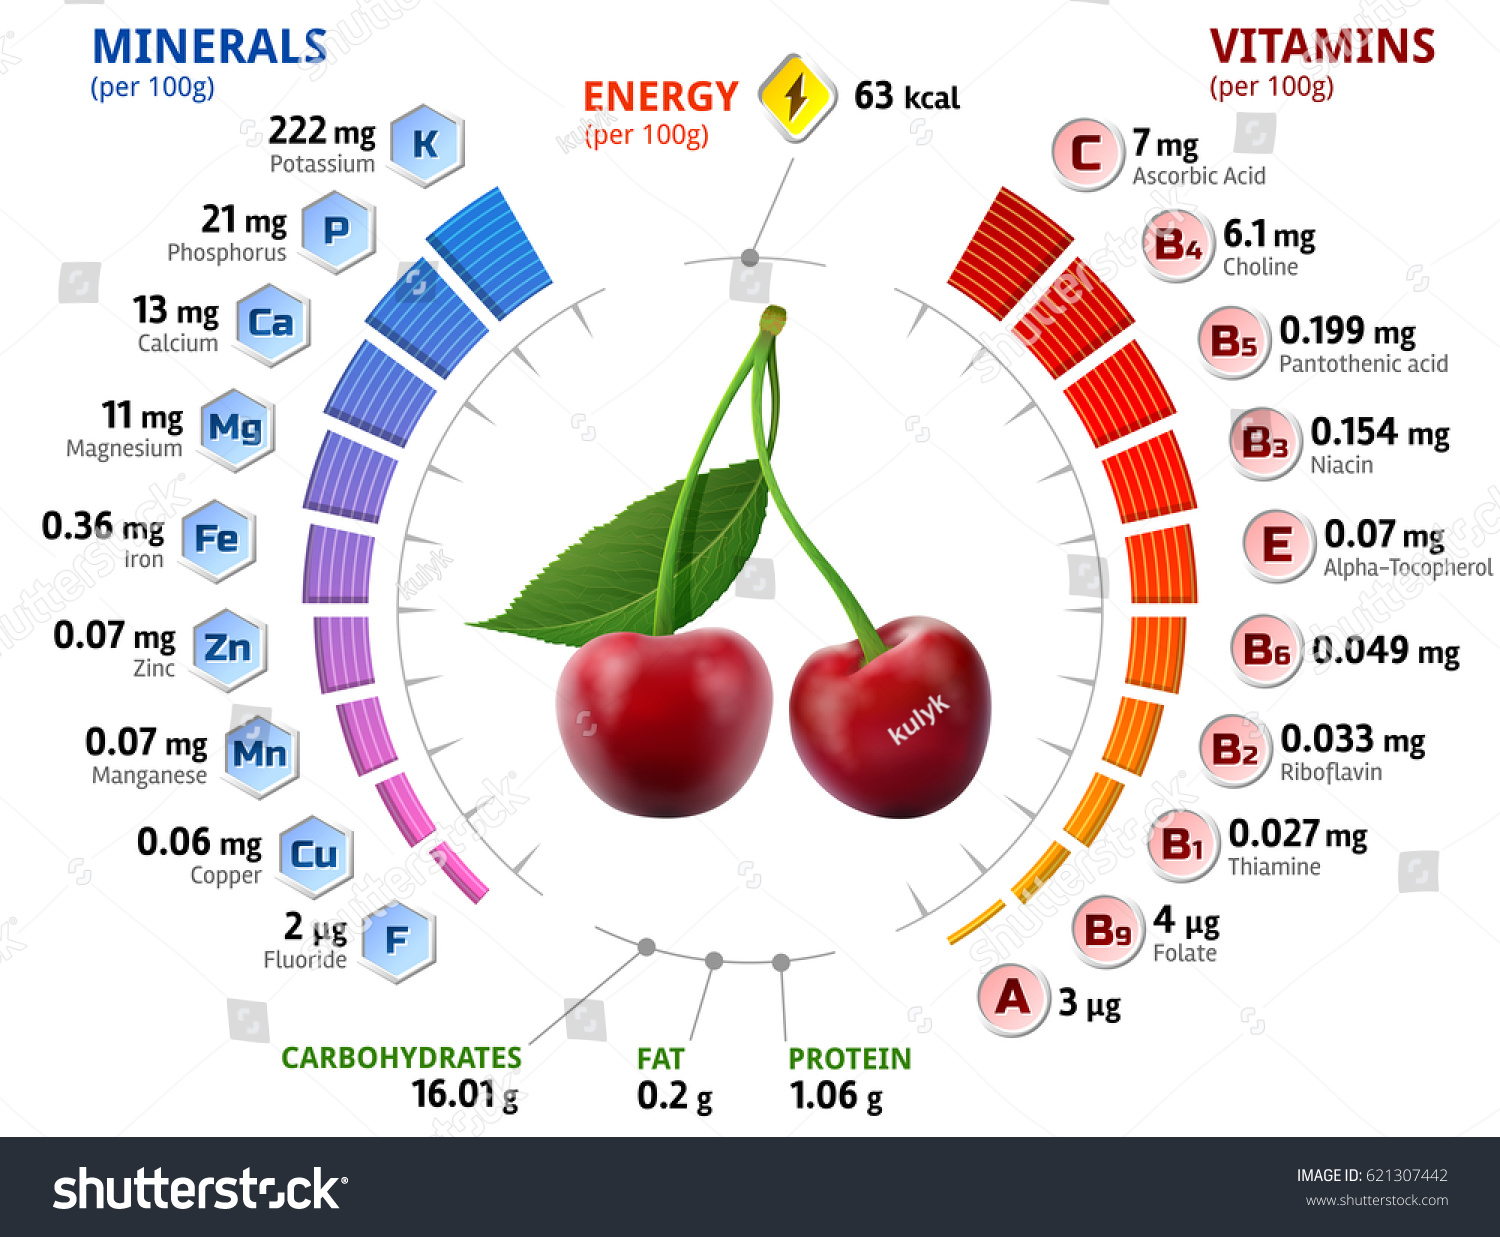 vitamins minerals cherry fruit infographics aboutのイラスト素材